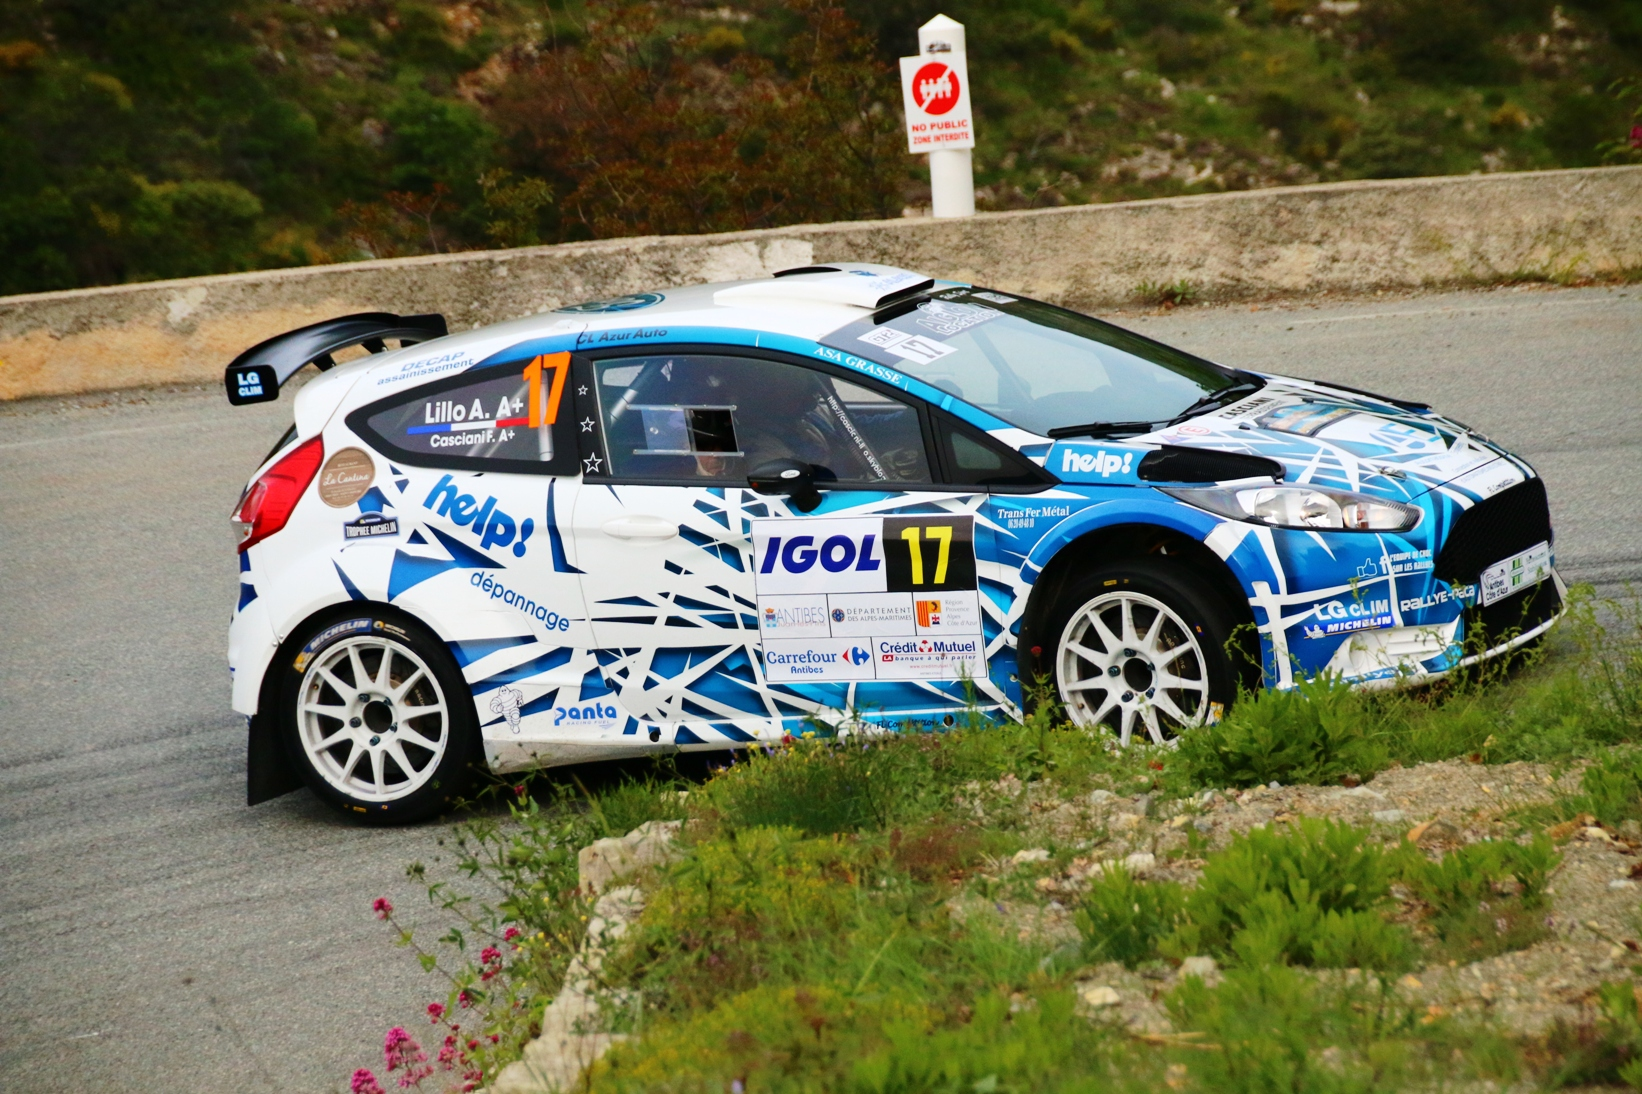 rallye d'Antibes 2017 photo Jean-François THIRY (3)